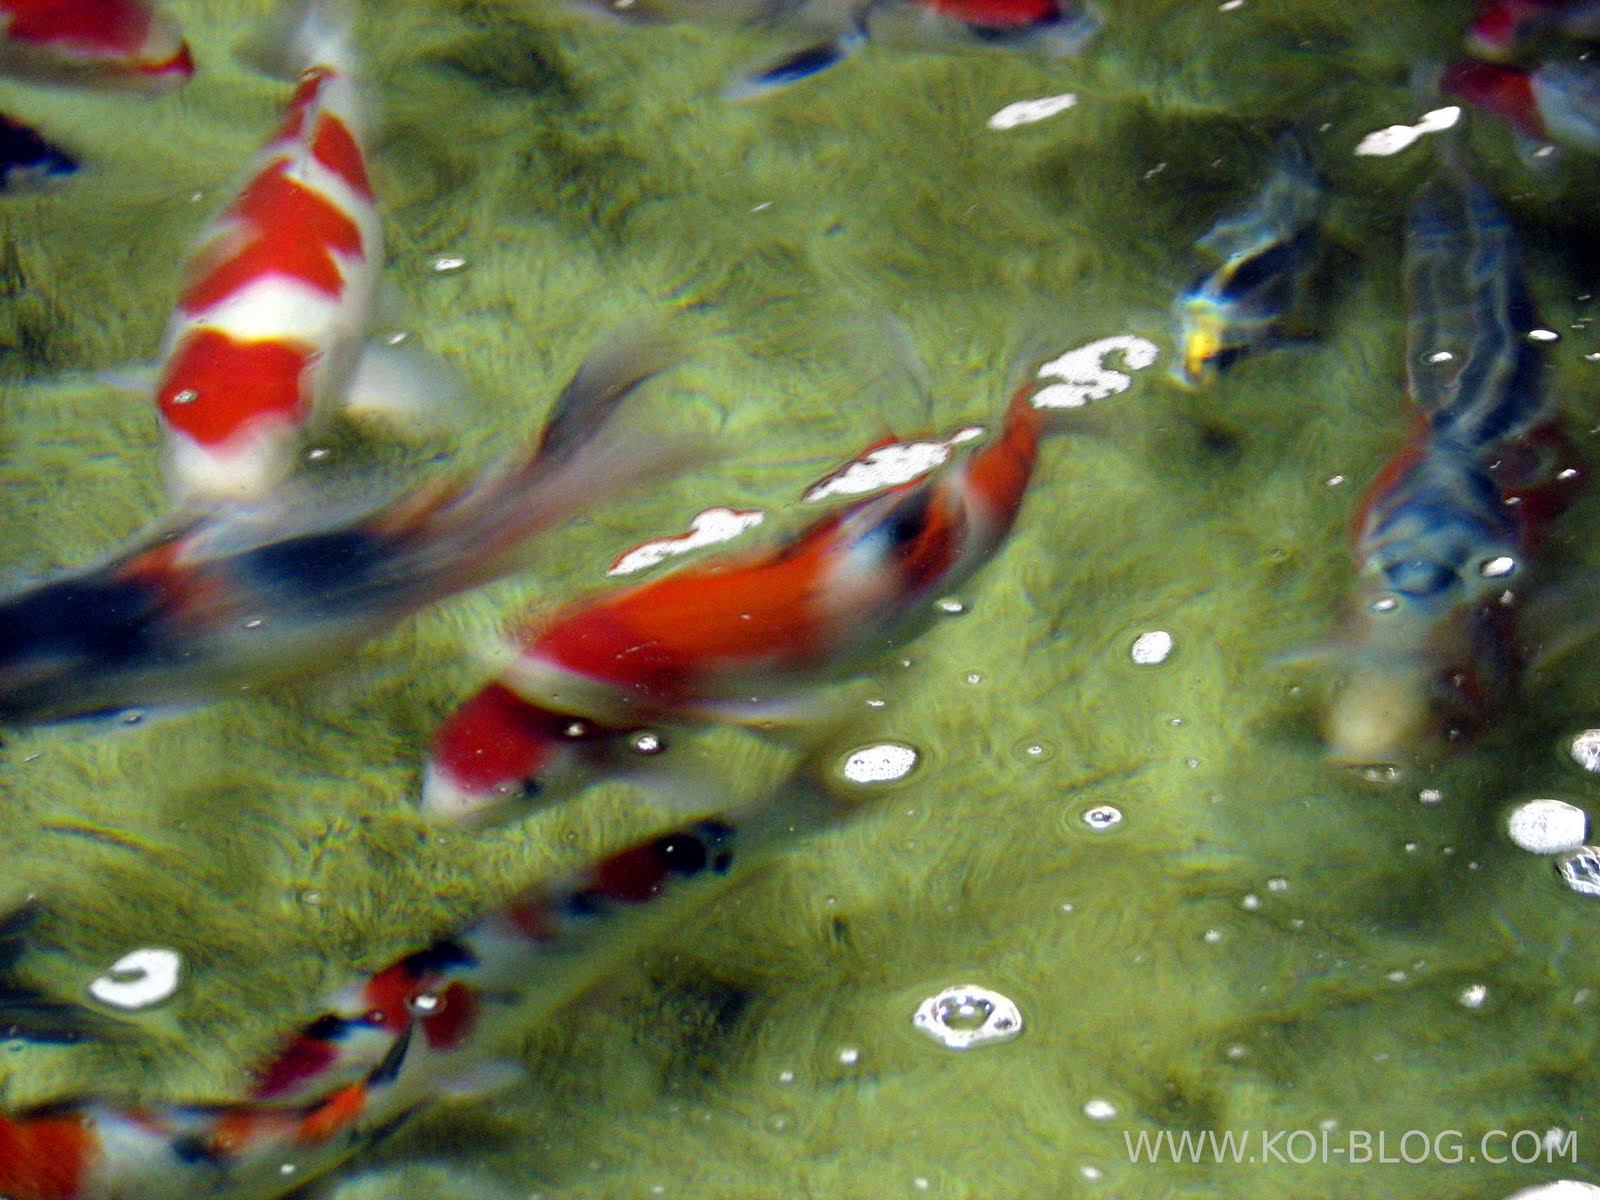 Koi blog koi fish varieties for Rare koi fish